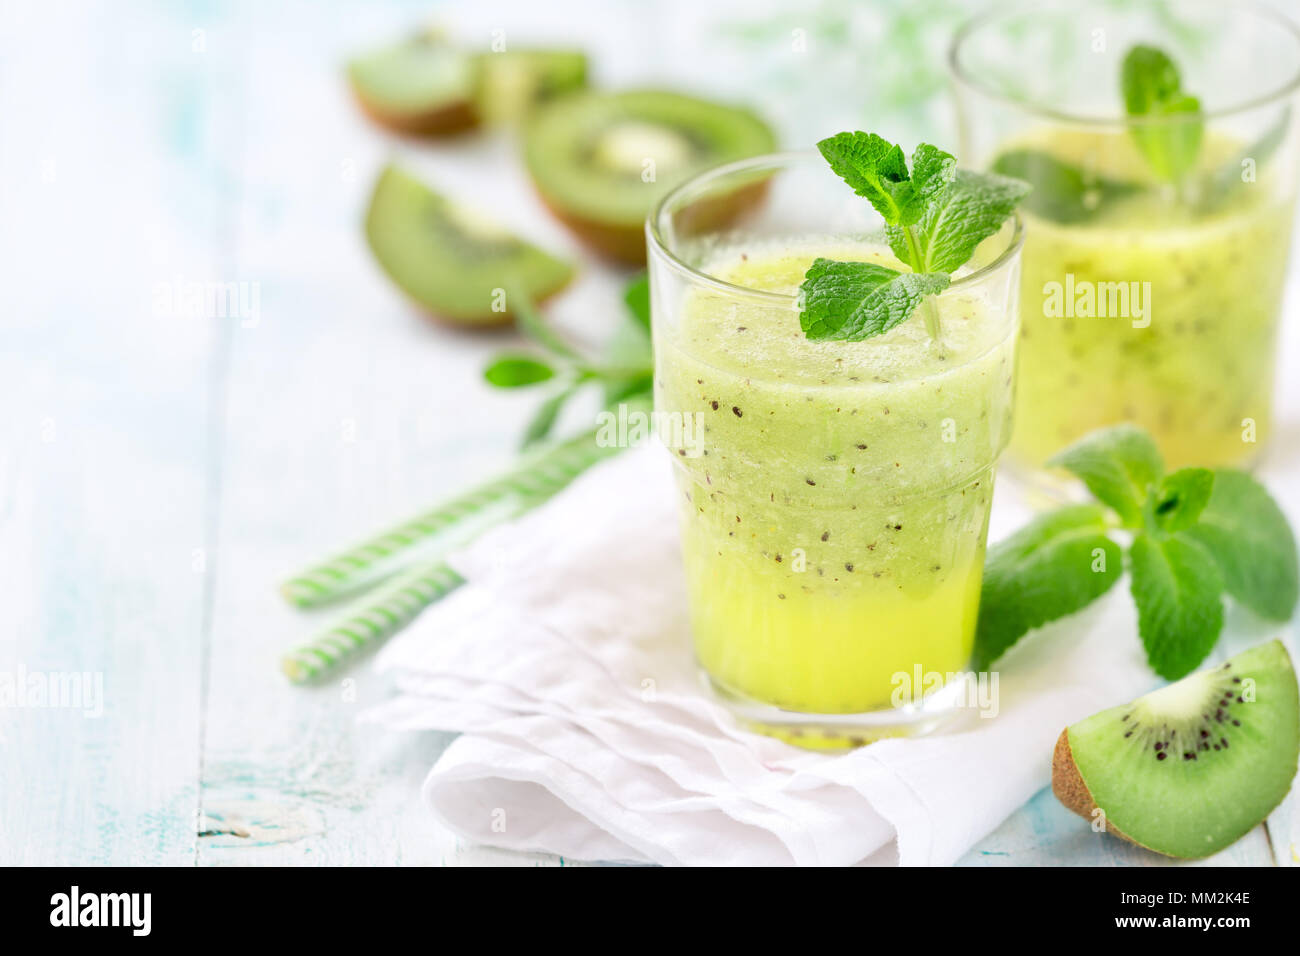 Healthy antioxidant and detox smoothie with kiwi, apple juice and mint. With copy space for your text - Stock Image